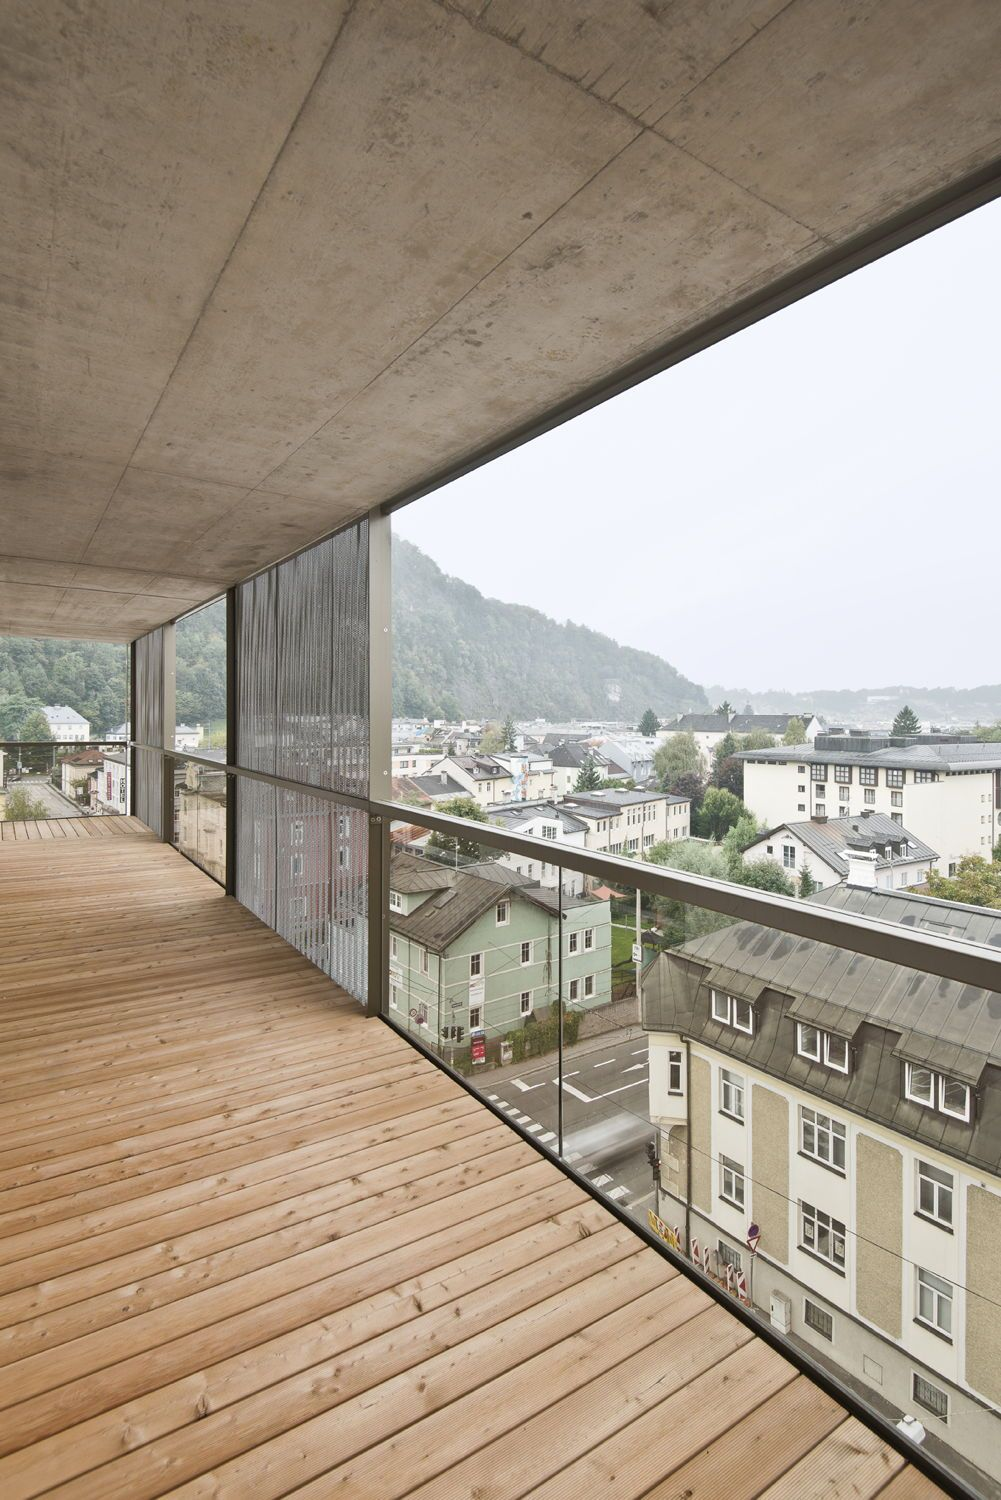 A f a s i a architekten - 2 bs architekten ...